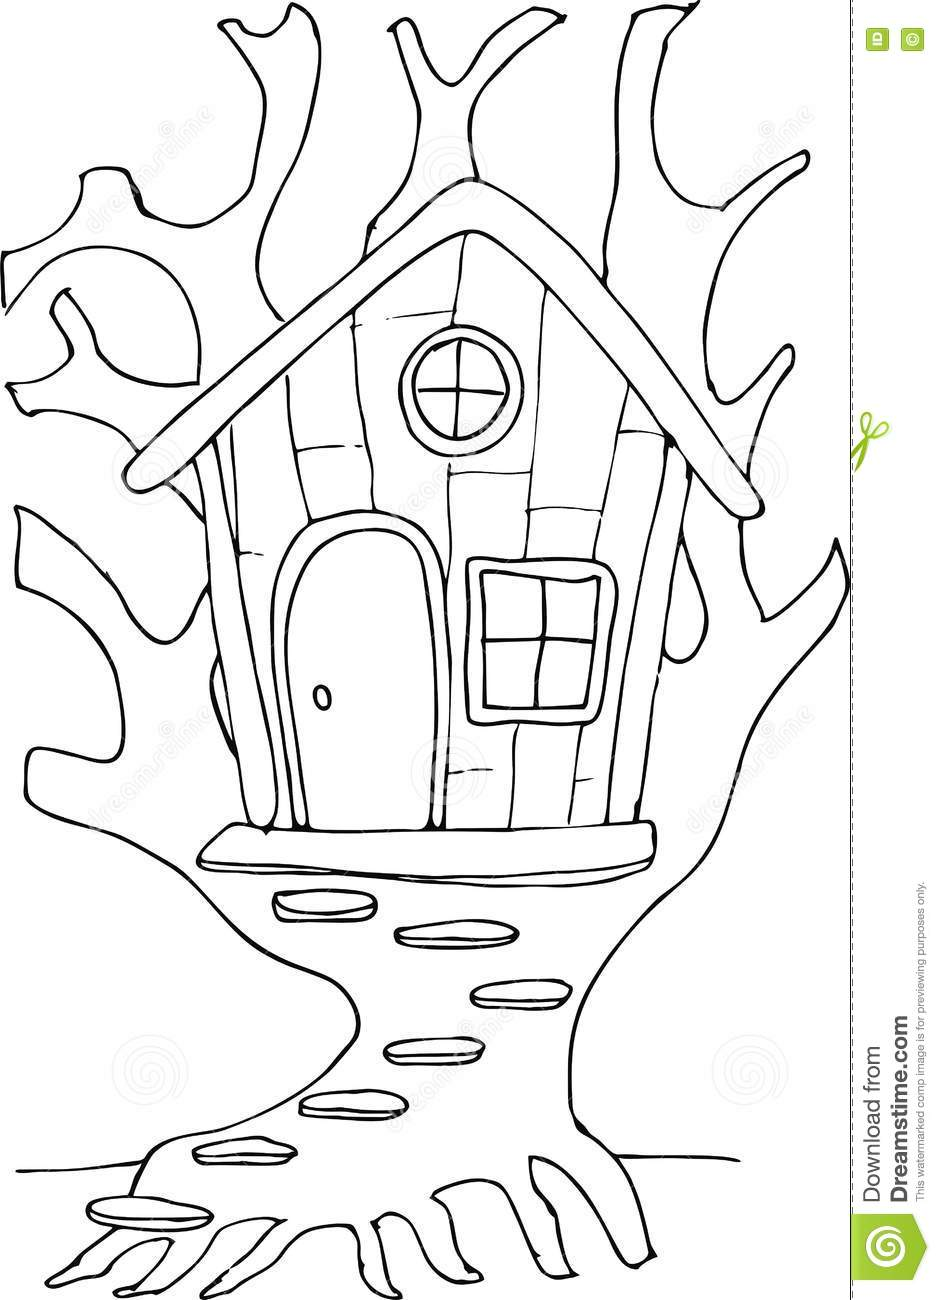 Royalty Free Vector Download Doodle Style Fairy Tree House